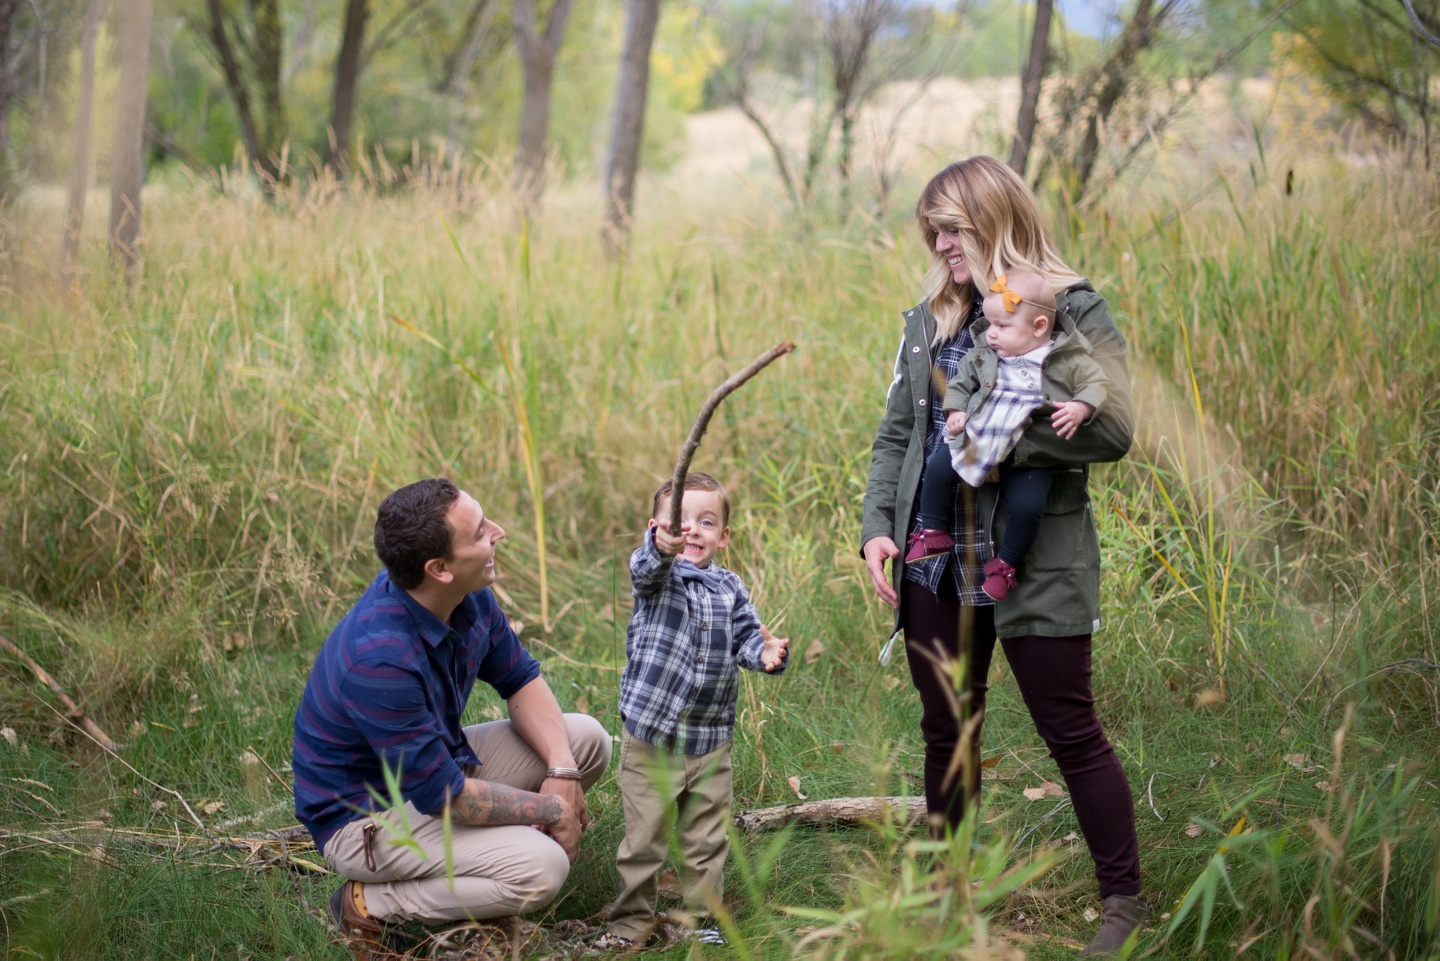 DAmico family photoshoot by The Aperture Company Photographers in Utah